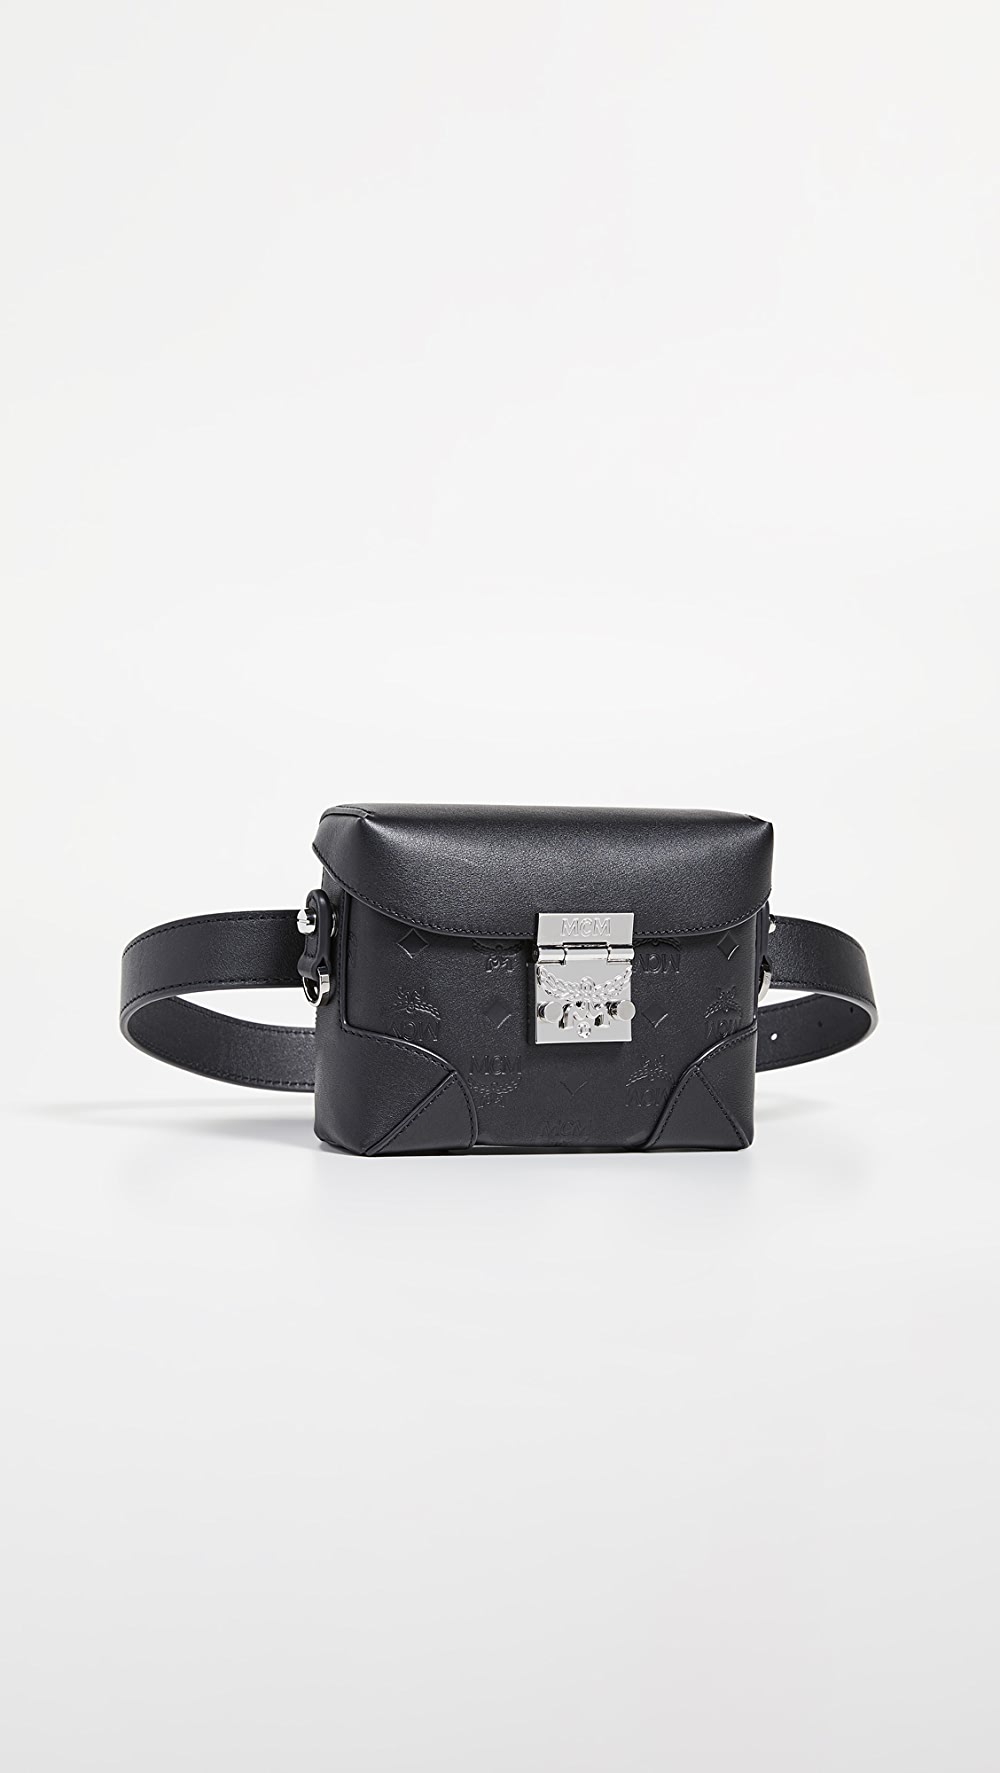 Enthusiastic Mcm - Soft Berlin Monogram Belt Bag Attractive And Durable